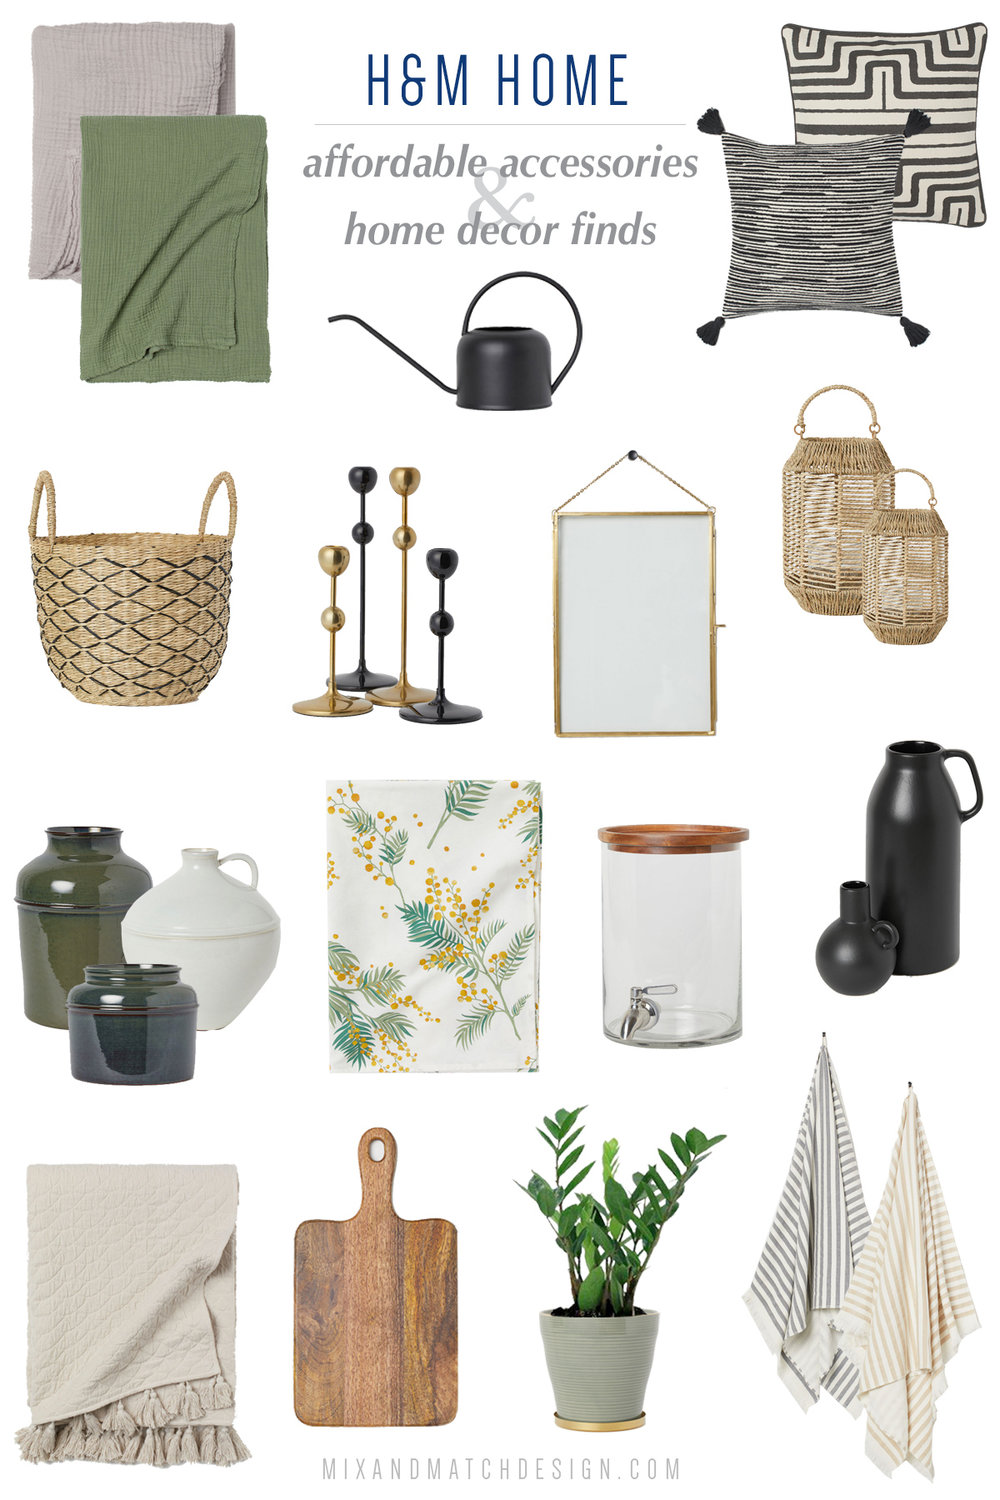 Looking for affordable home decor? H&M Home is a great place to shop! If your style falls into modern, eclectic, or bohemian, you'll be sure to find lots of great decor and accessories for your space. Click the image to go to the Mix & Match blog to get all the sources!